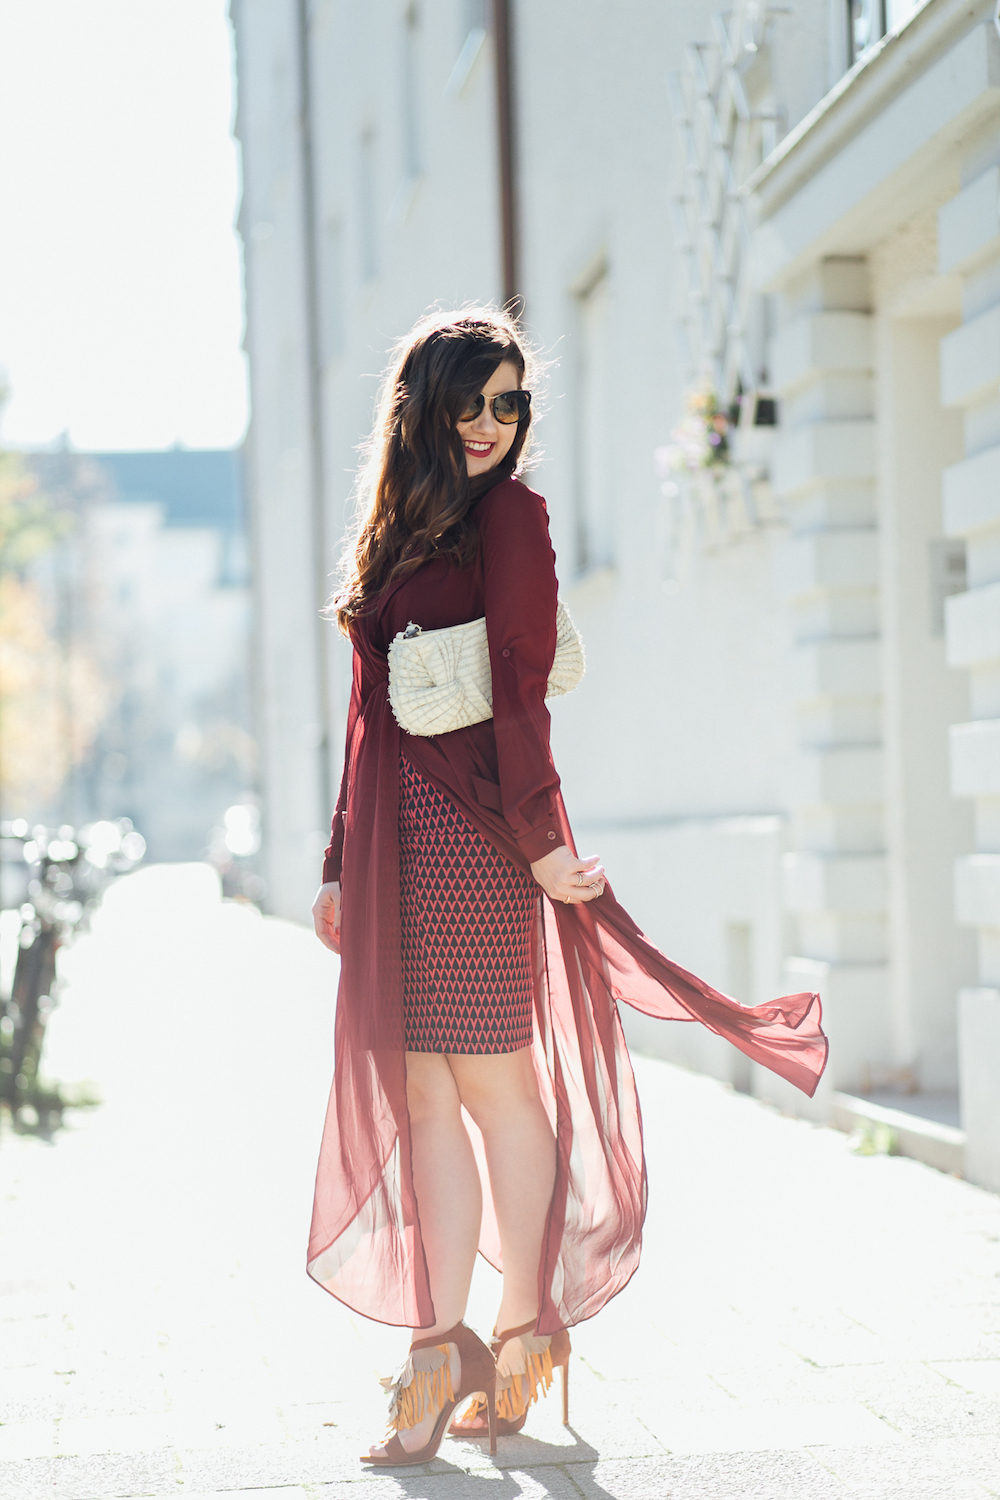 Roter Rock, Sexy Outfit